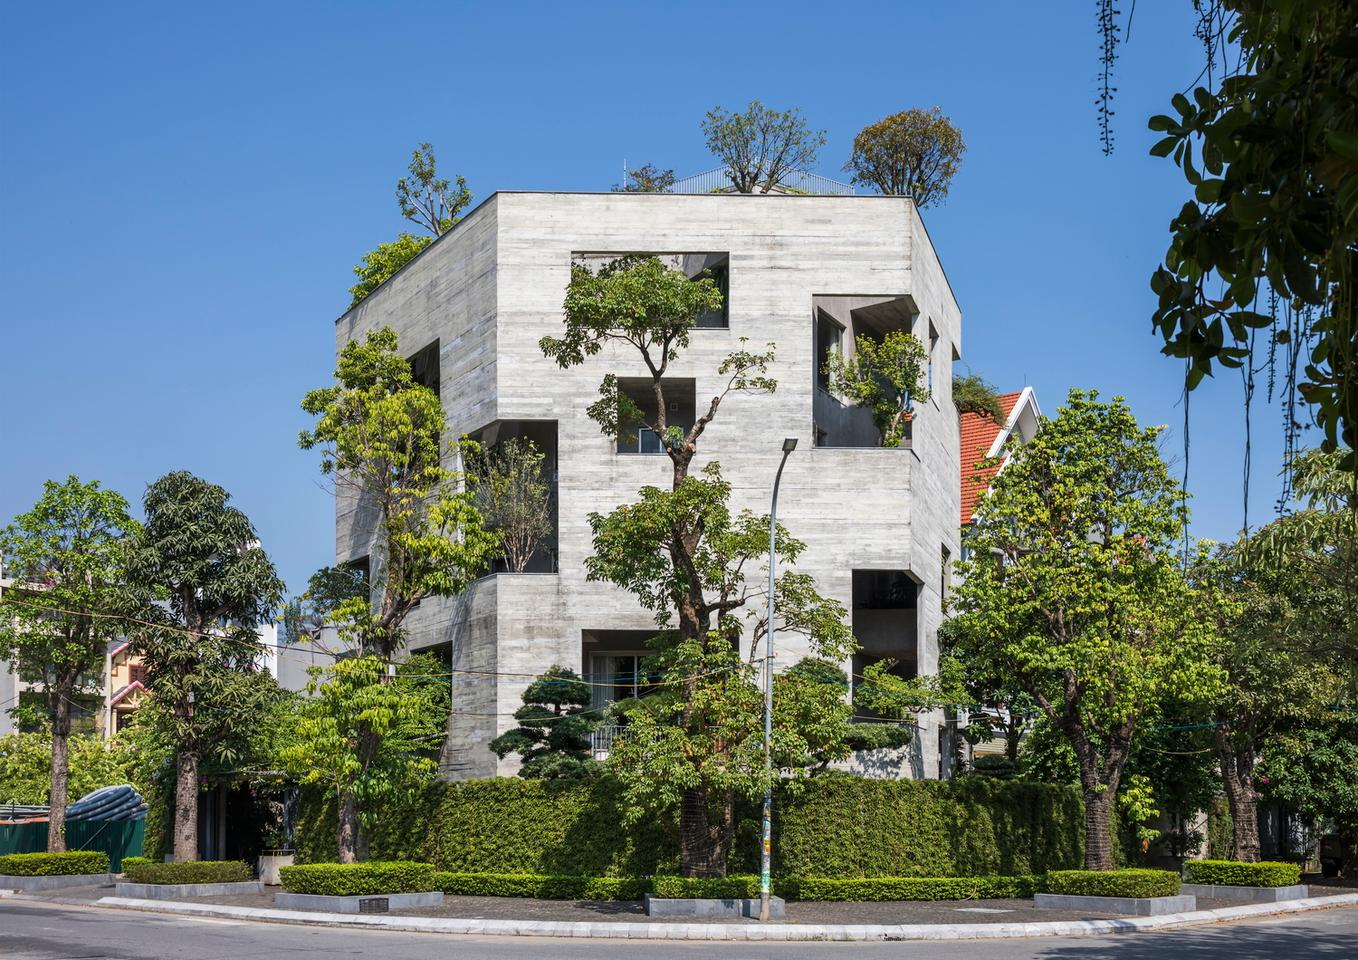 Ha Long Villa is the latest project in Vo Trong Nghia's House for Trees series, which aims to reintroduce greenery to Vietnam's inner-city areas